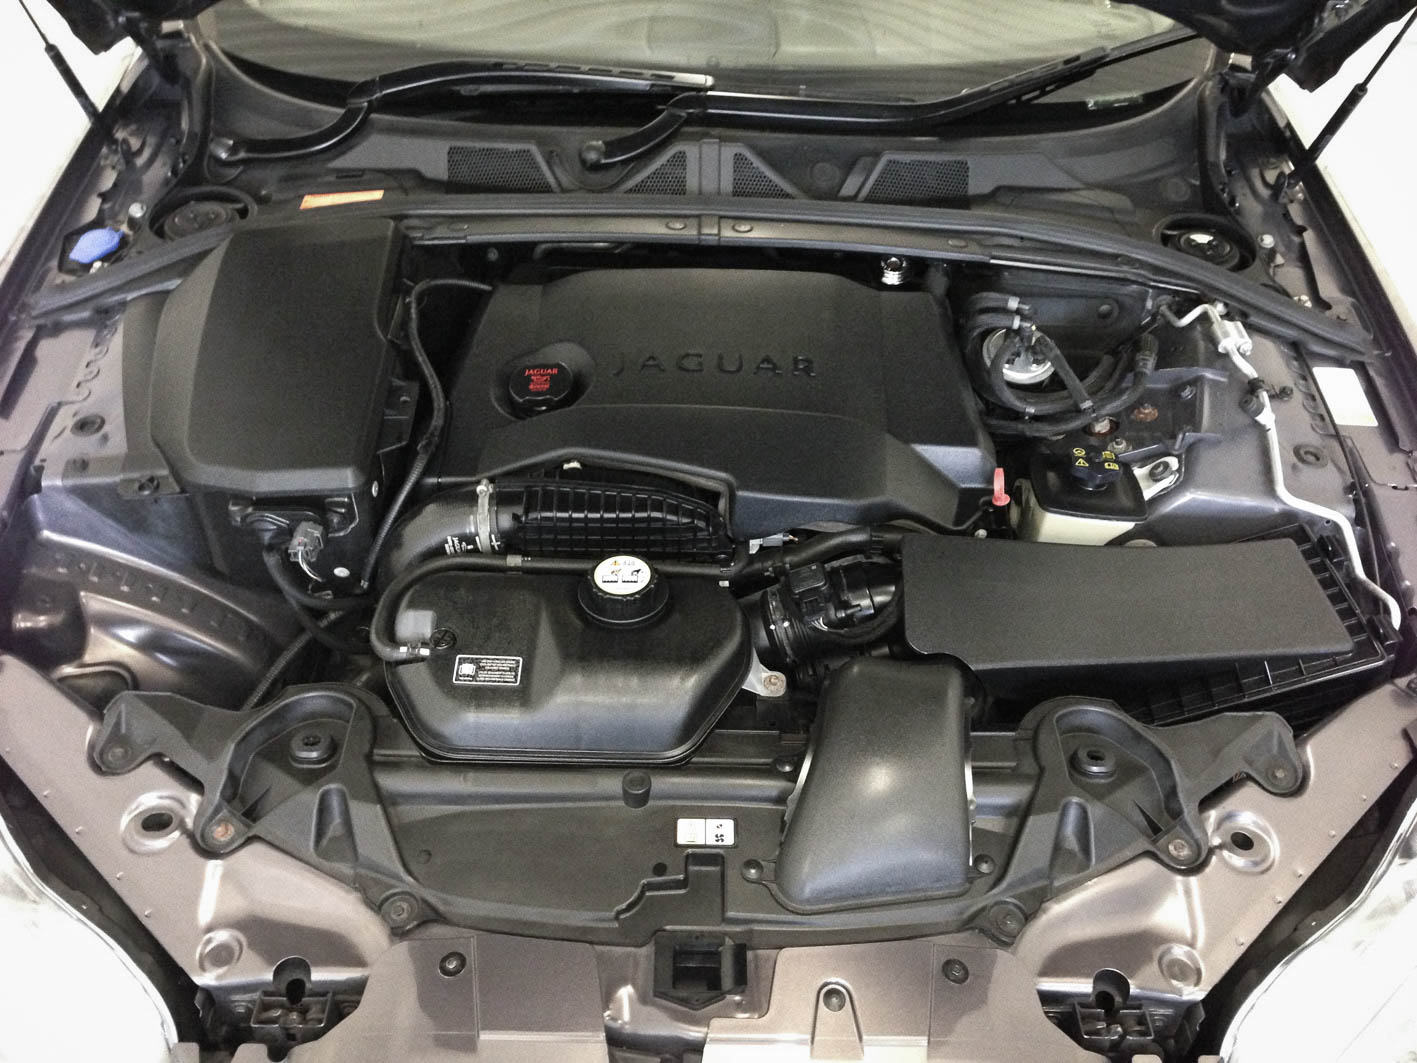 Jaguar XF – Engine